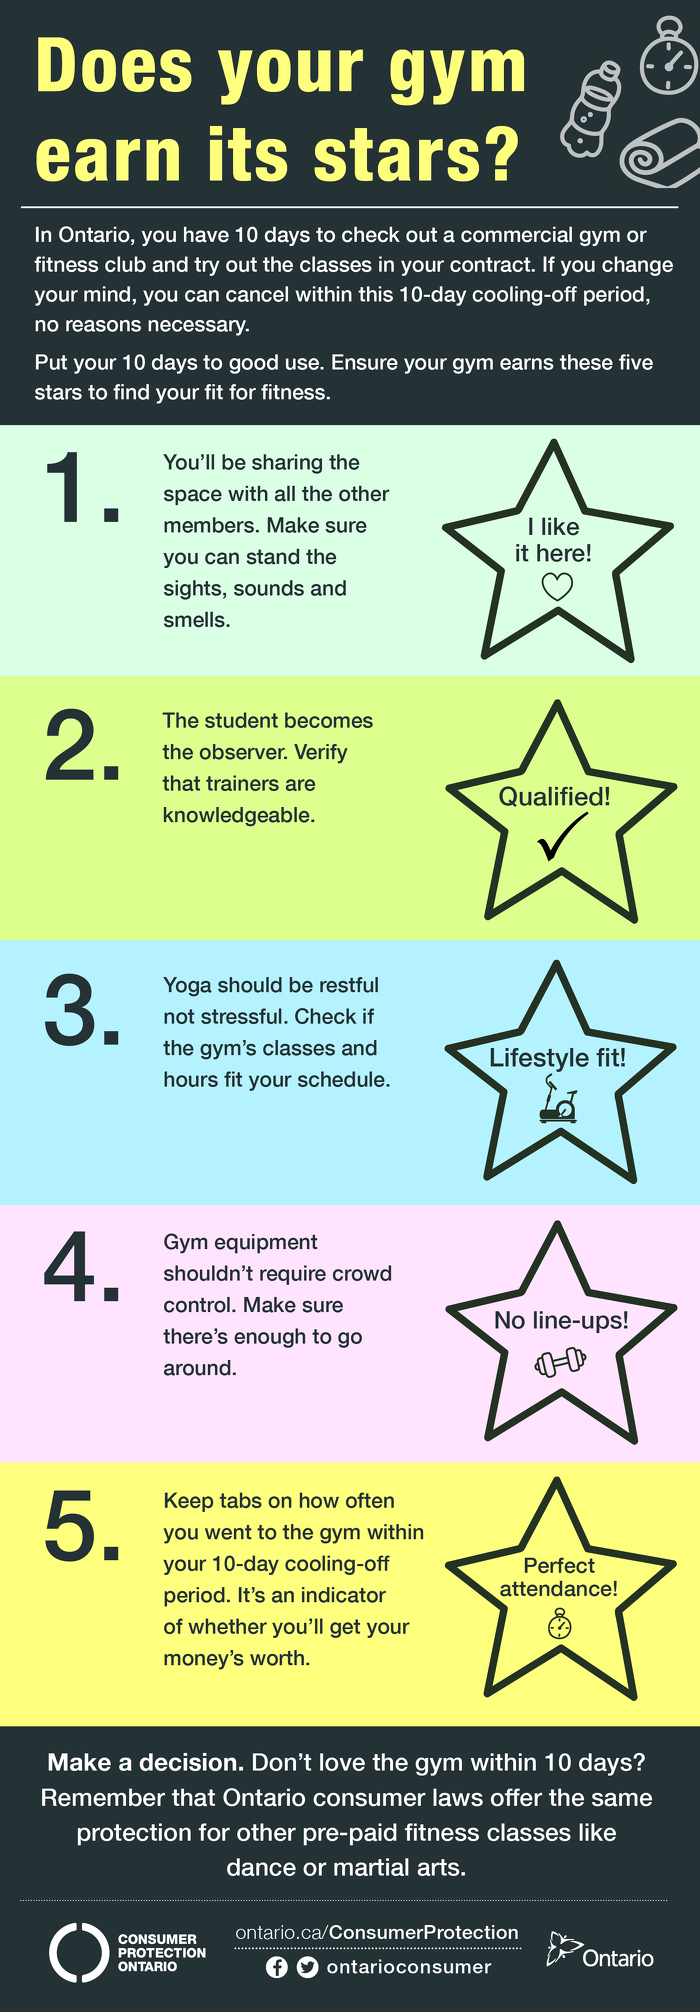 Does your gym earn its stars? In Ontario, you have 10 days to check out a commercial gym or fitness club and try out the classes in your contract. If you change your mind, you can cancel within this 10-day cooling-off period, no reasons necessary.